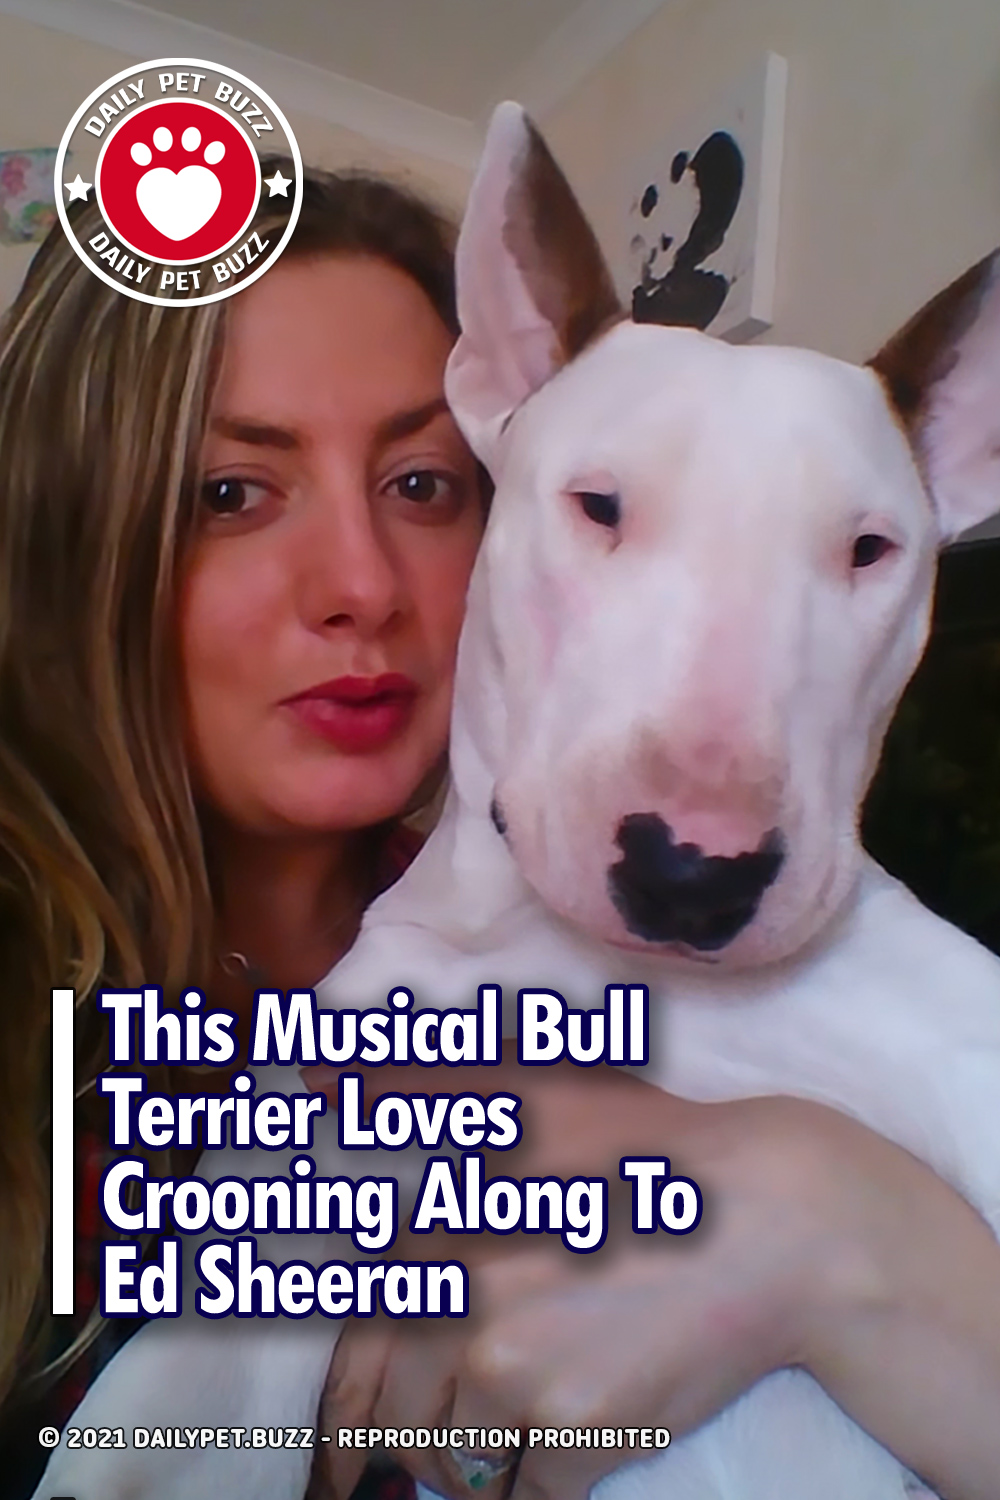 This Musical Bull Terrier Loves Crooning Along To Ed Sheeran